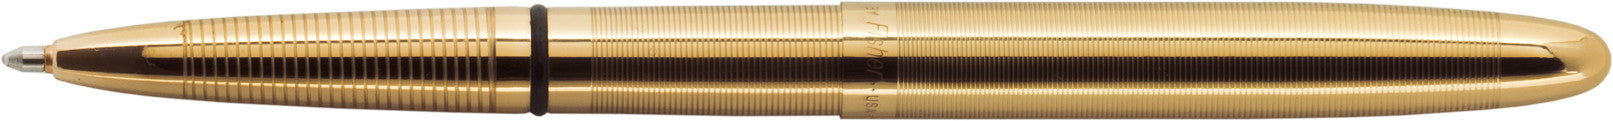 Fisher Lacquered Brass Space Pen